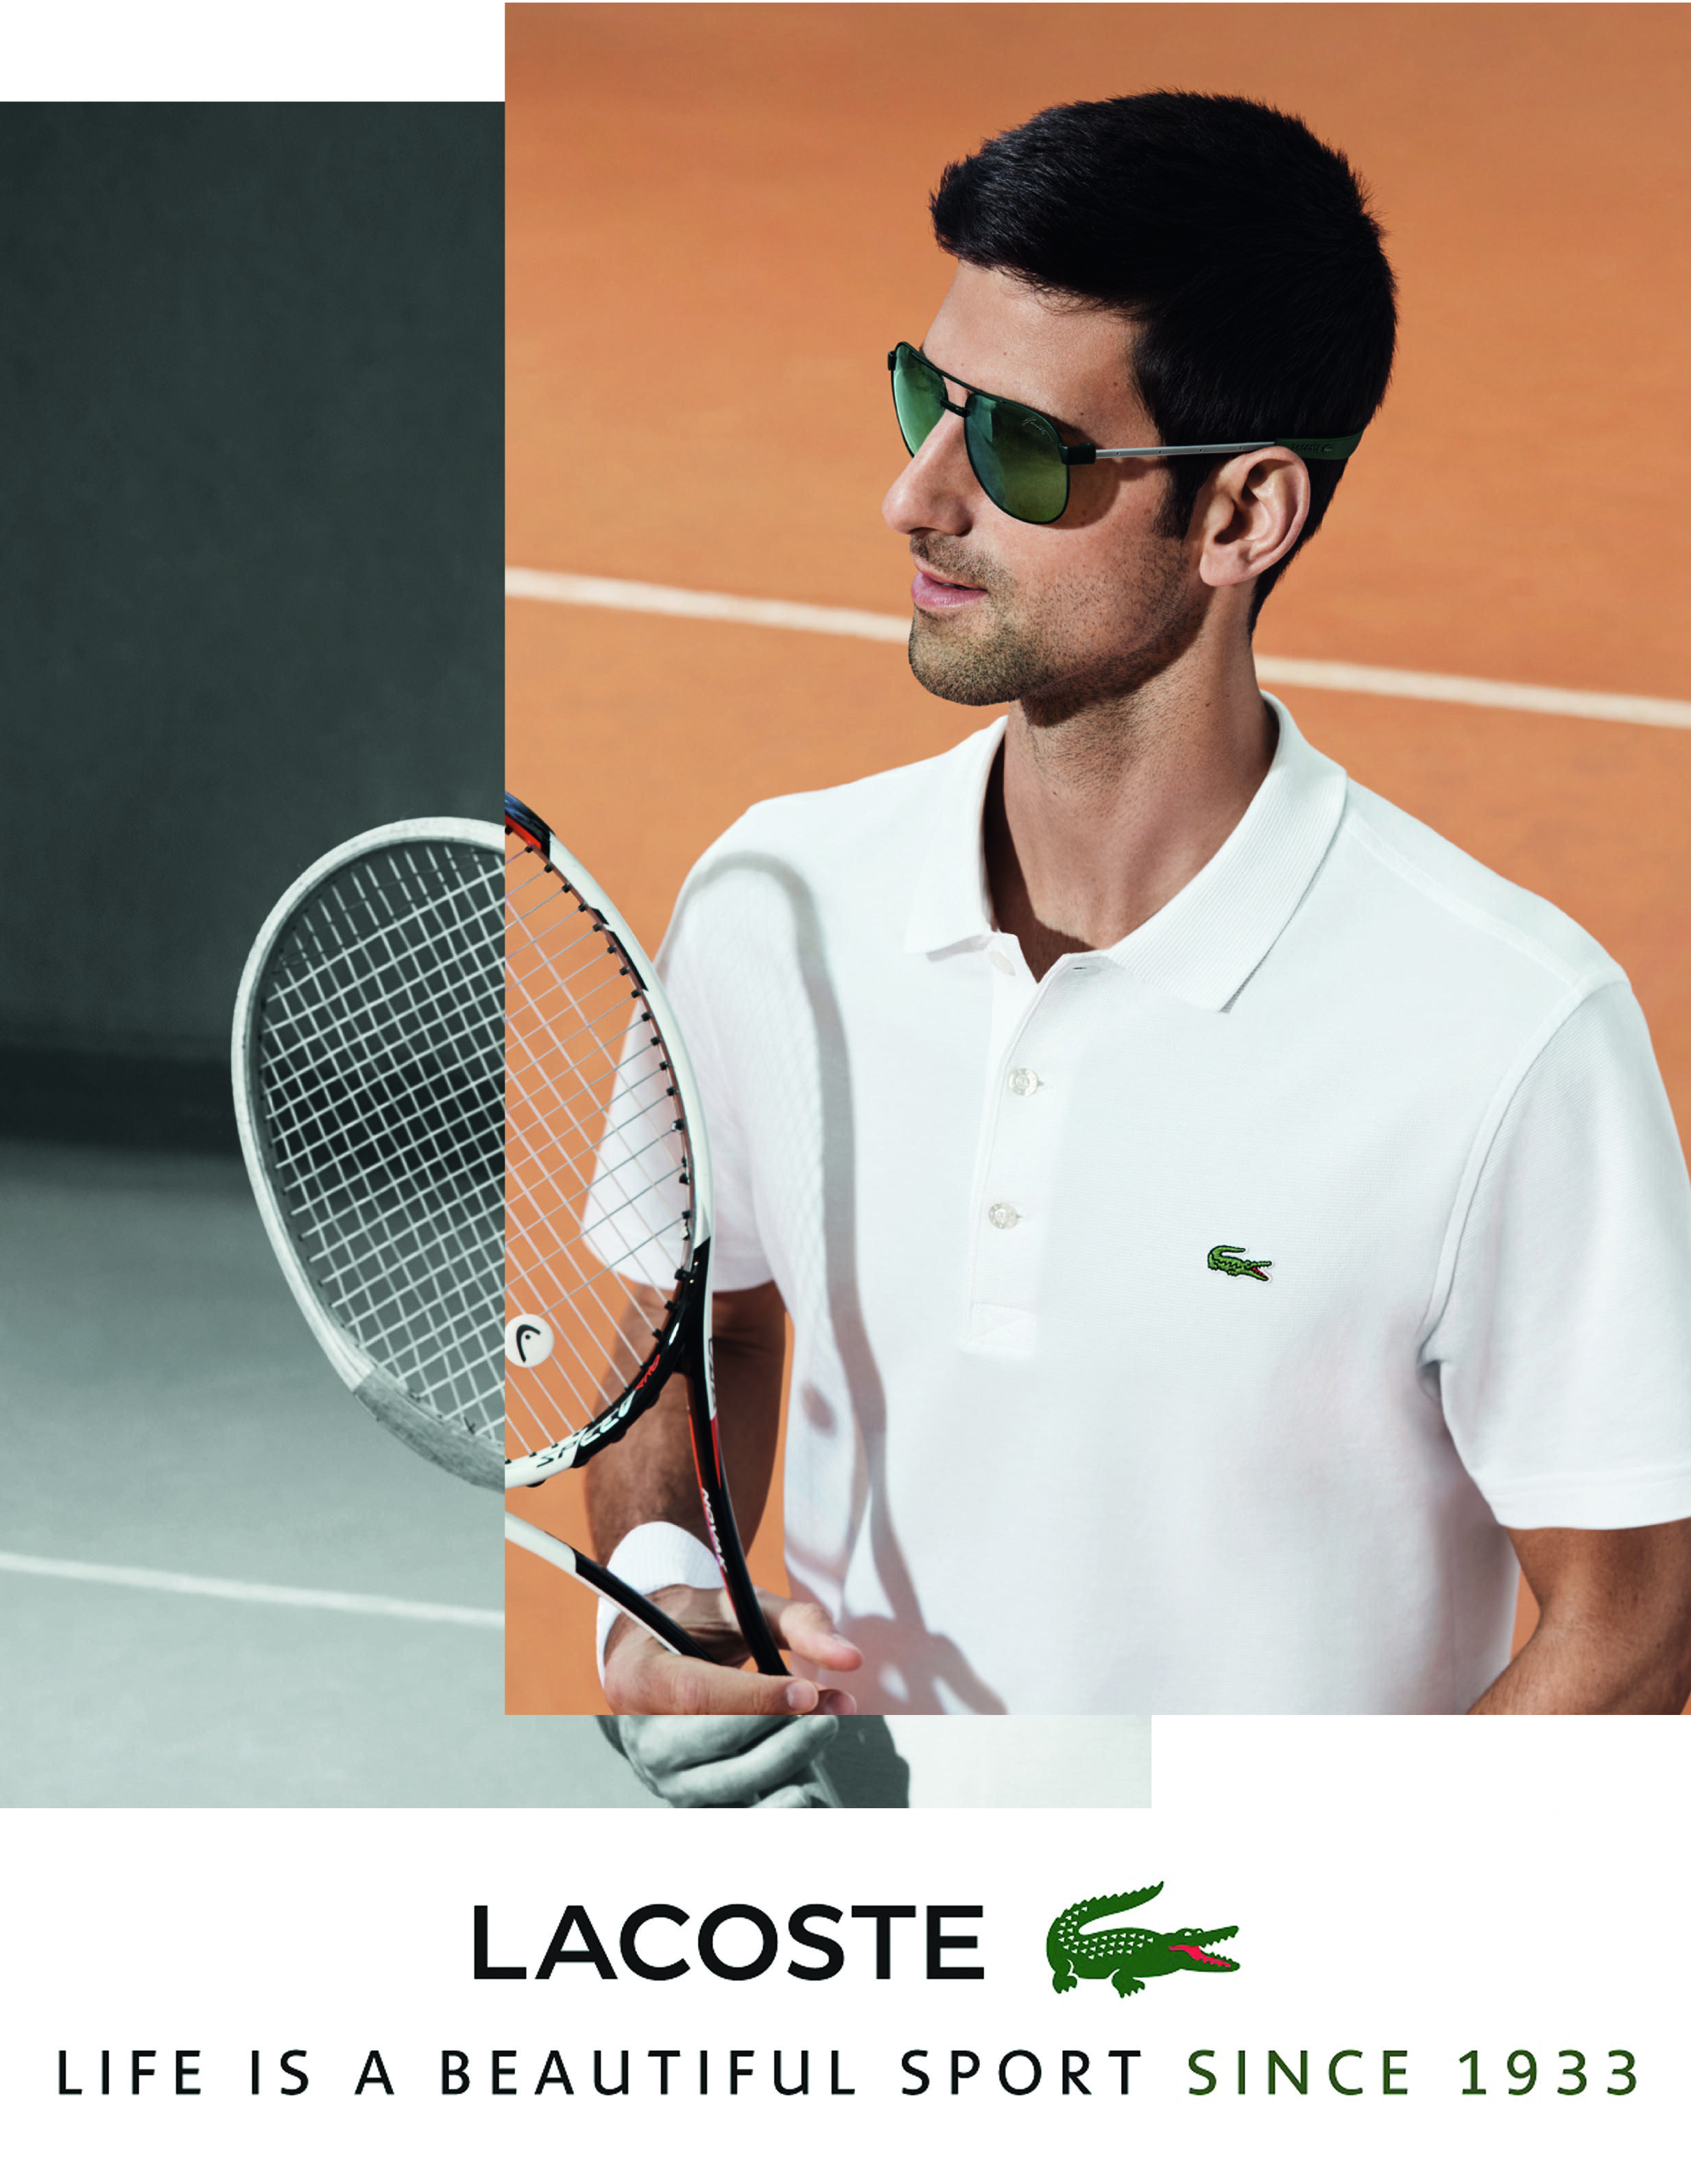 645ca26aa33 Lacoste Magnetic Lock Sunglasses. Worn by Novak Djokovic. Lens by ZEISS.   AlMokhtar